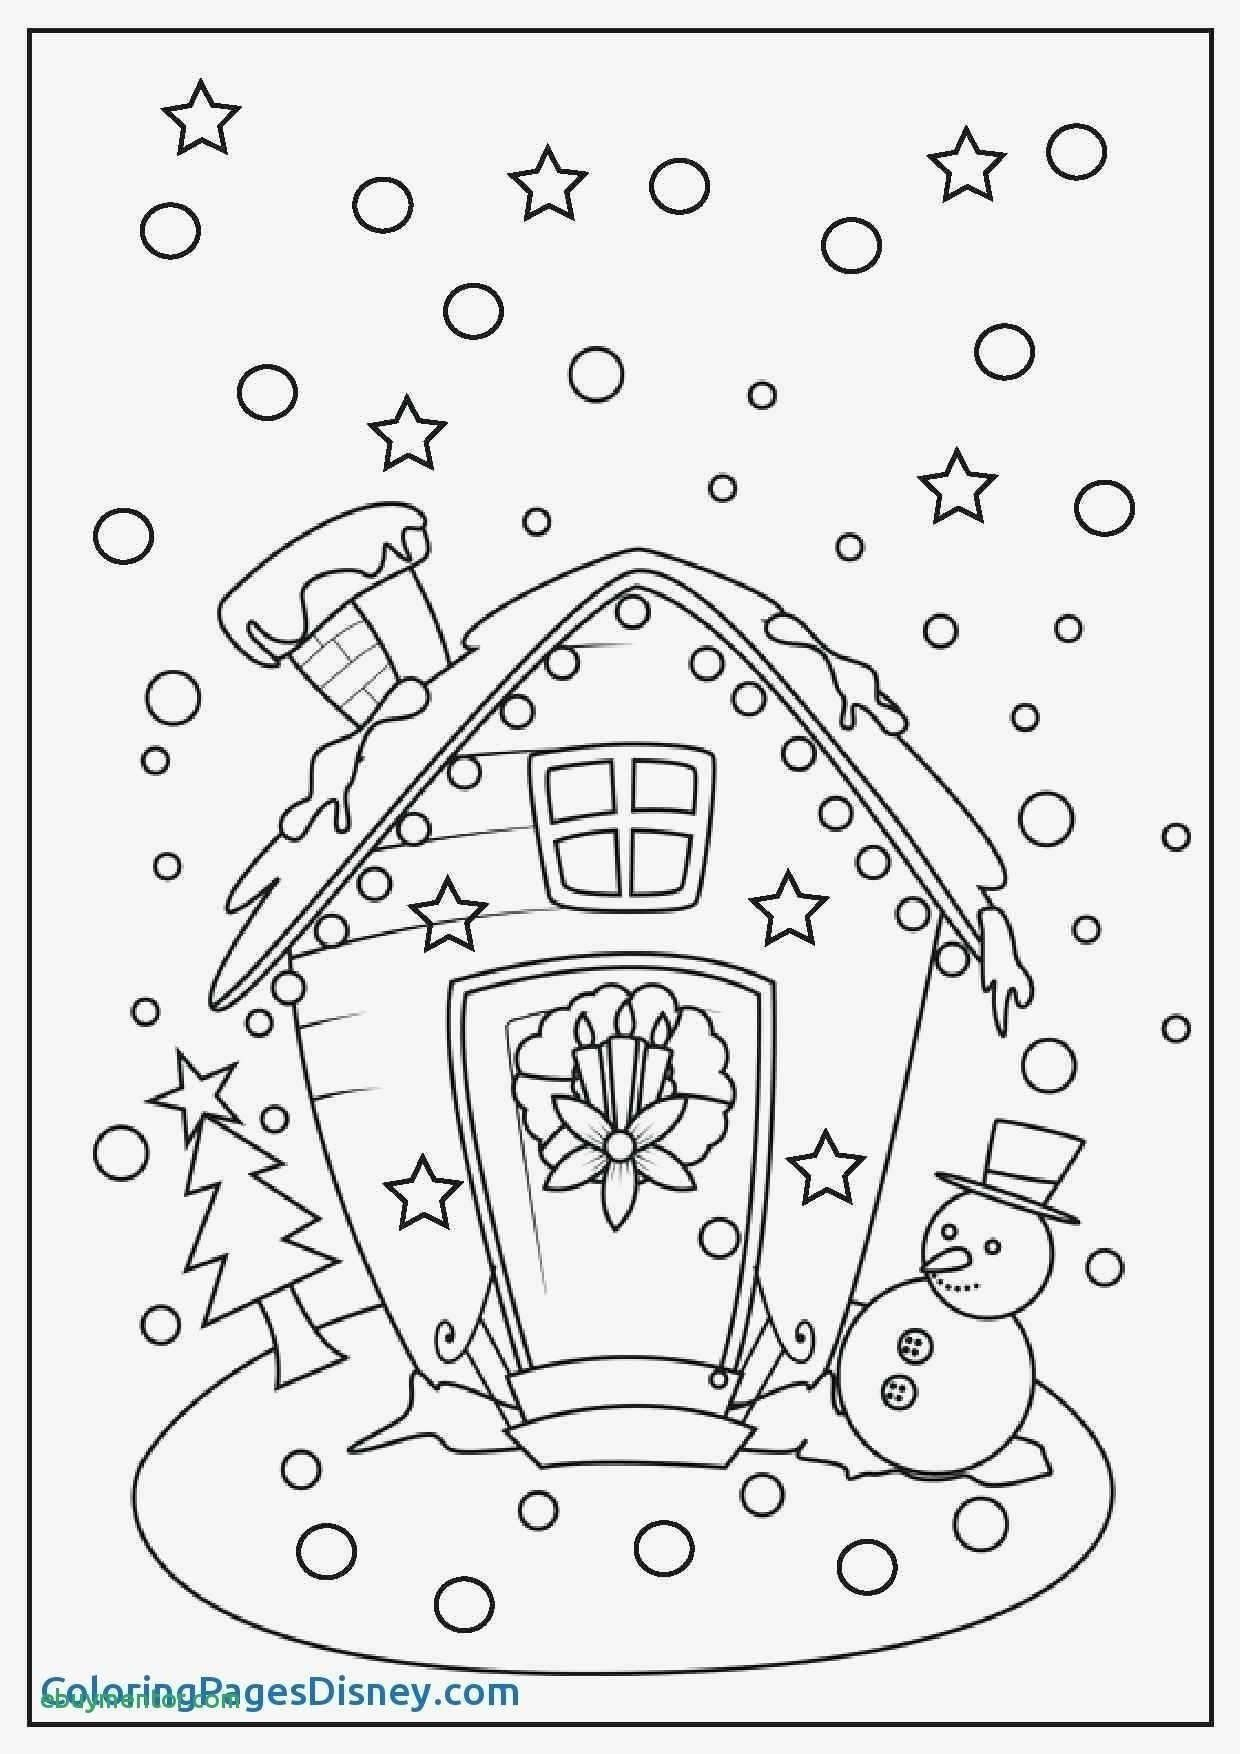 United States Coloring Page Luxury Best Government Canada Coloring Pages Kur Printable Christmas Coloring Pages Christmas Coloring Sheets Flag Coloring Pages